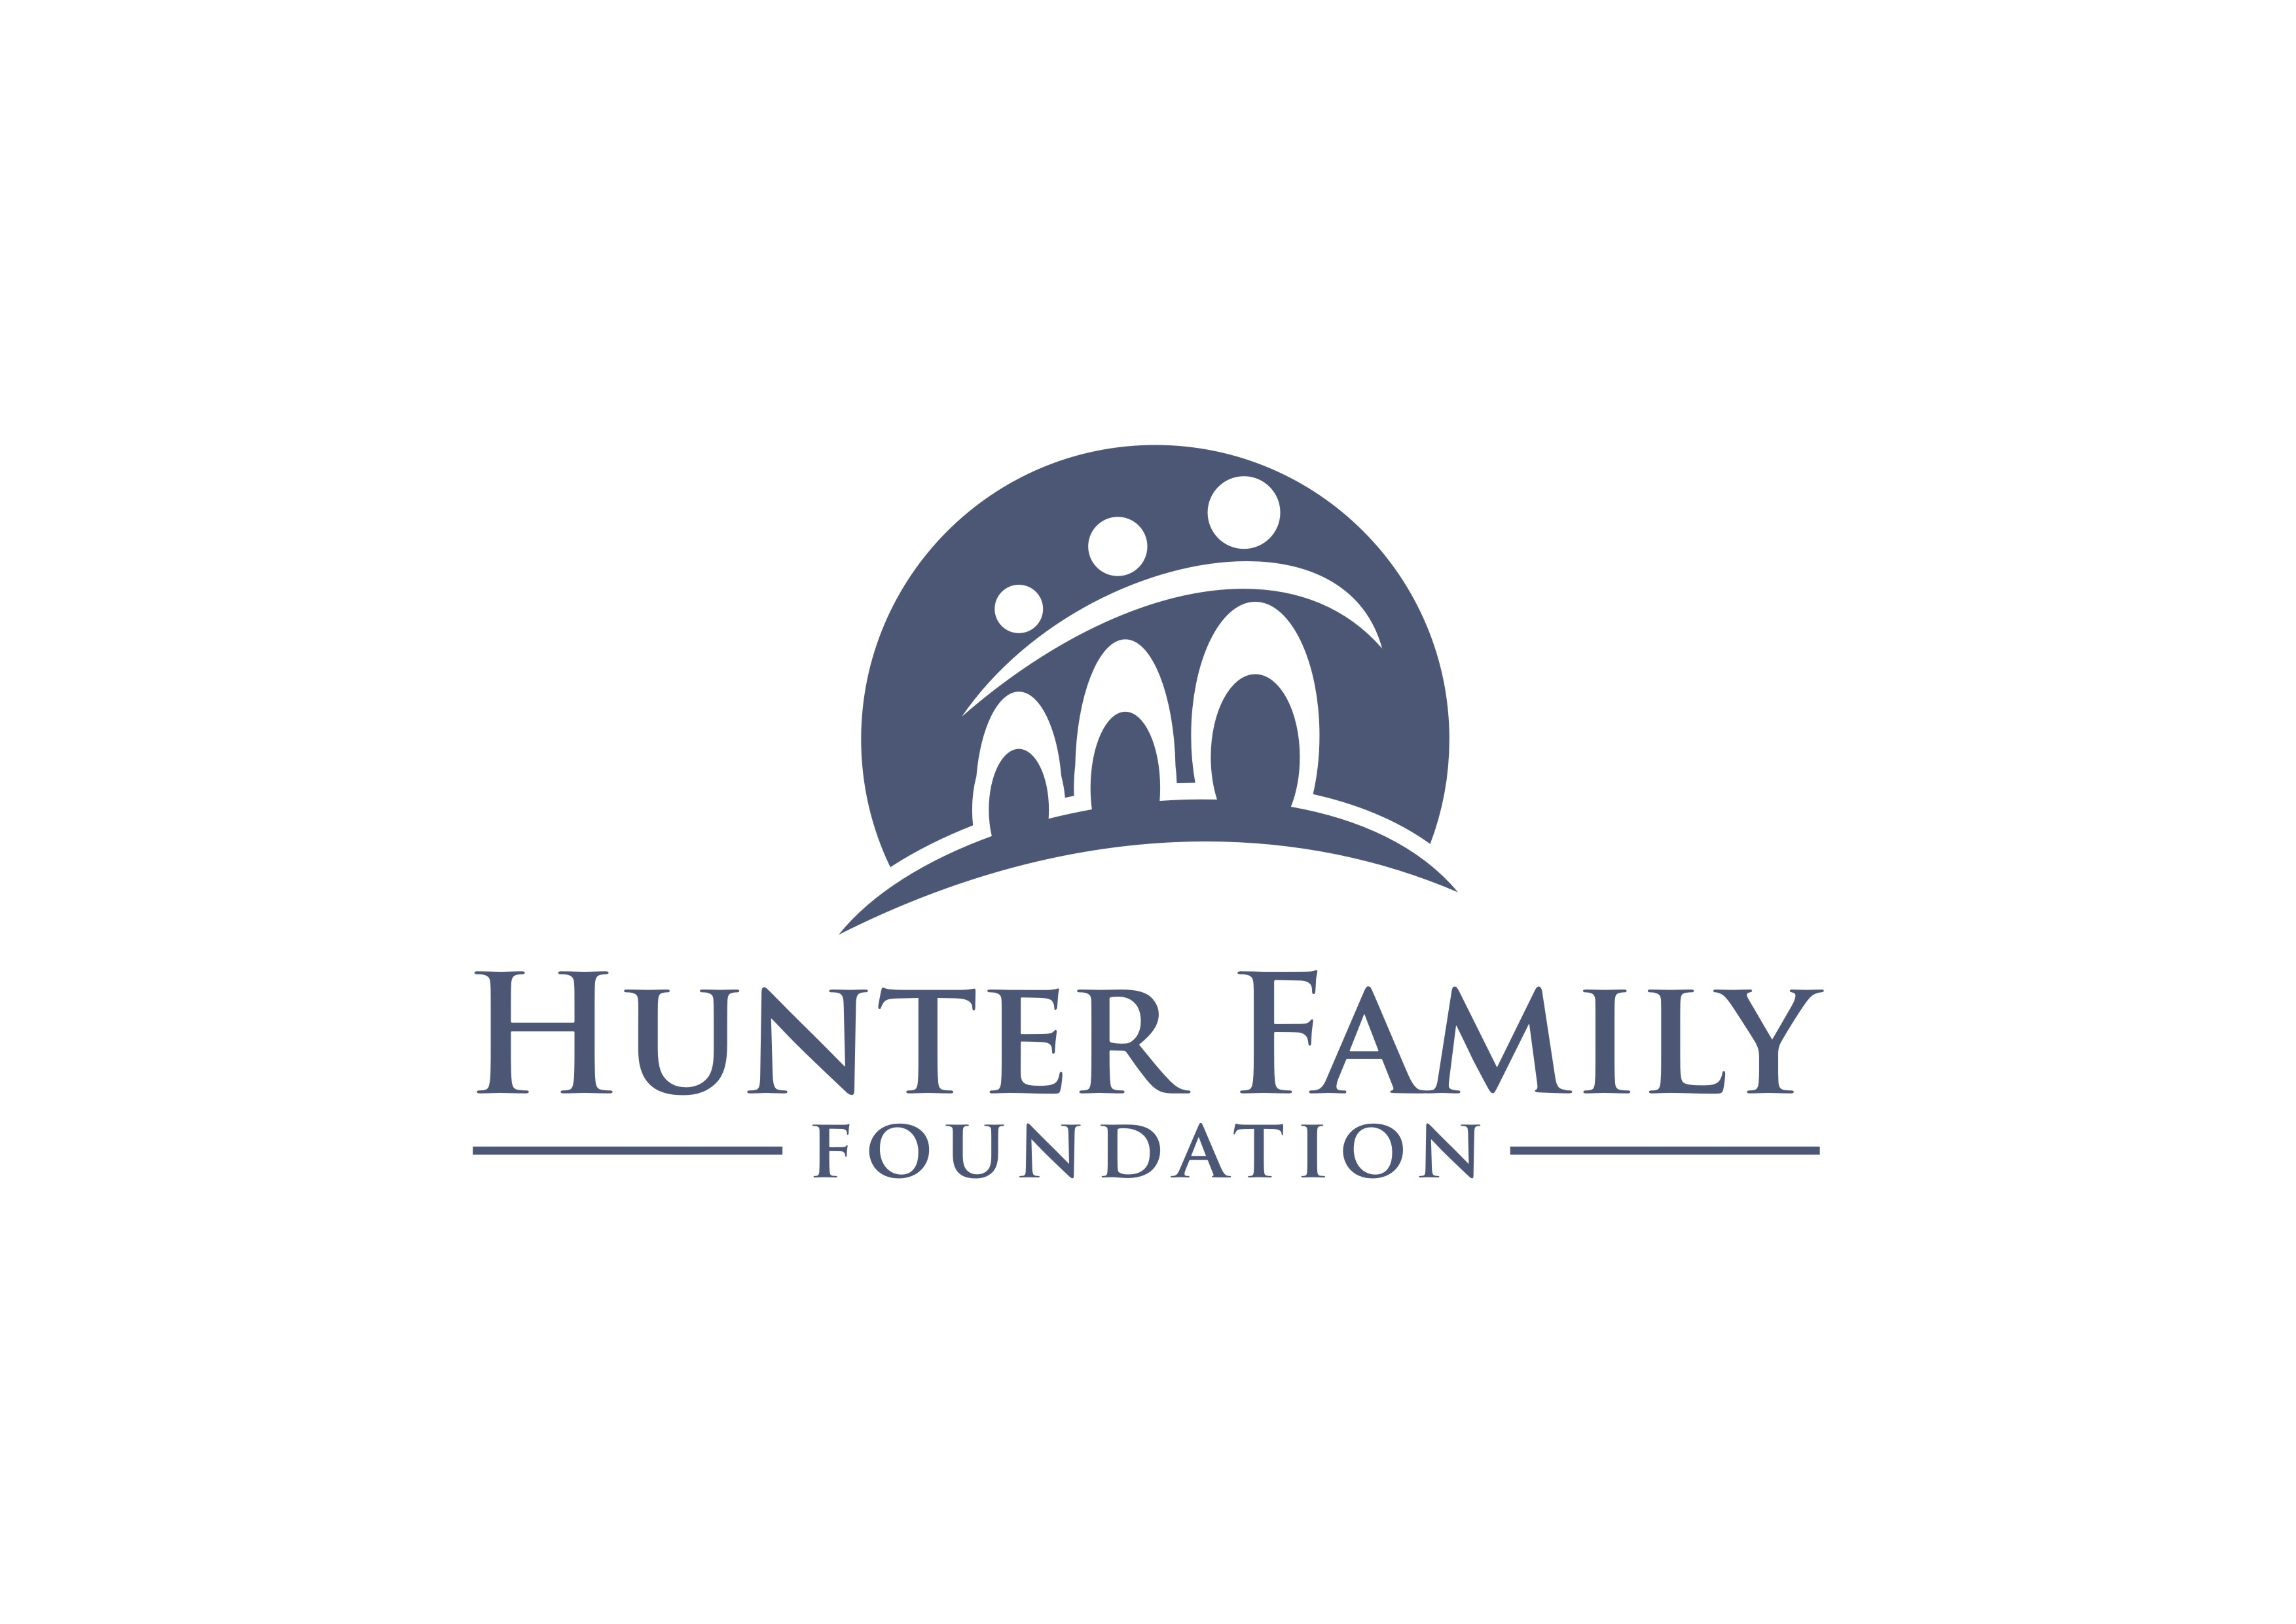 Hunter Family Foundation